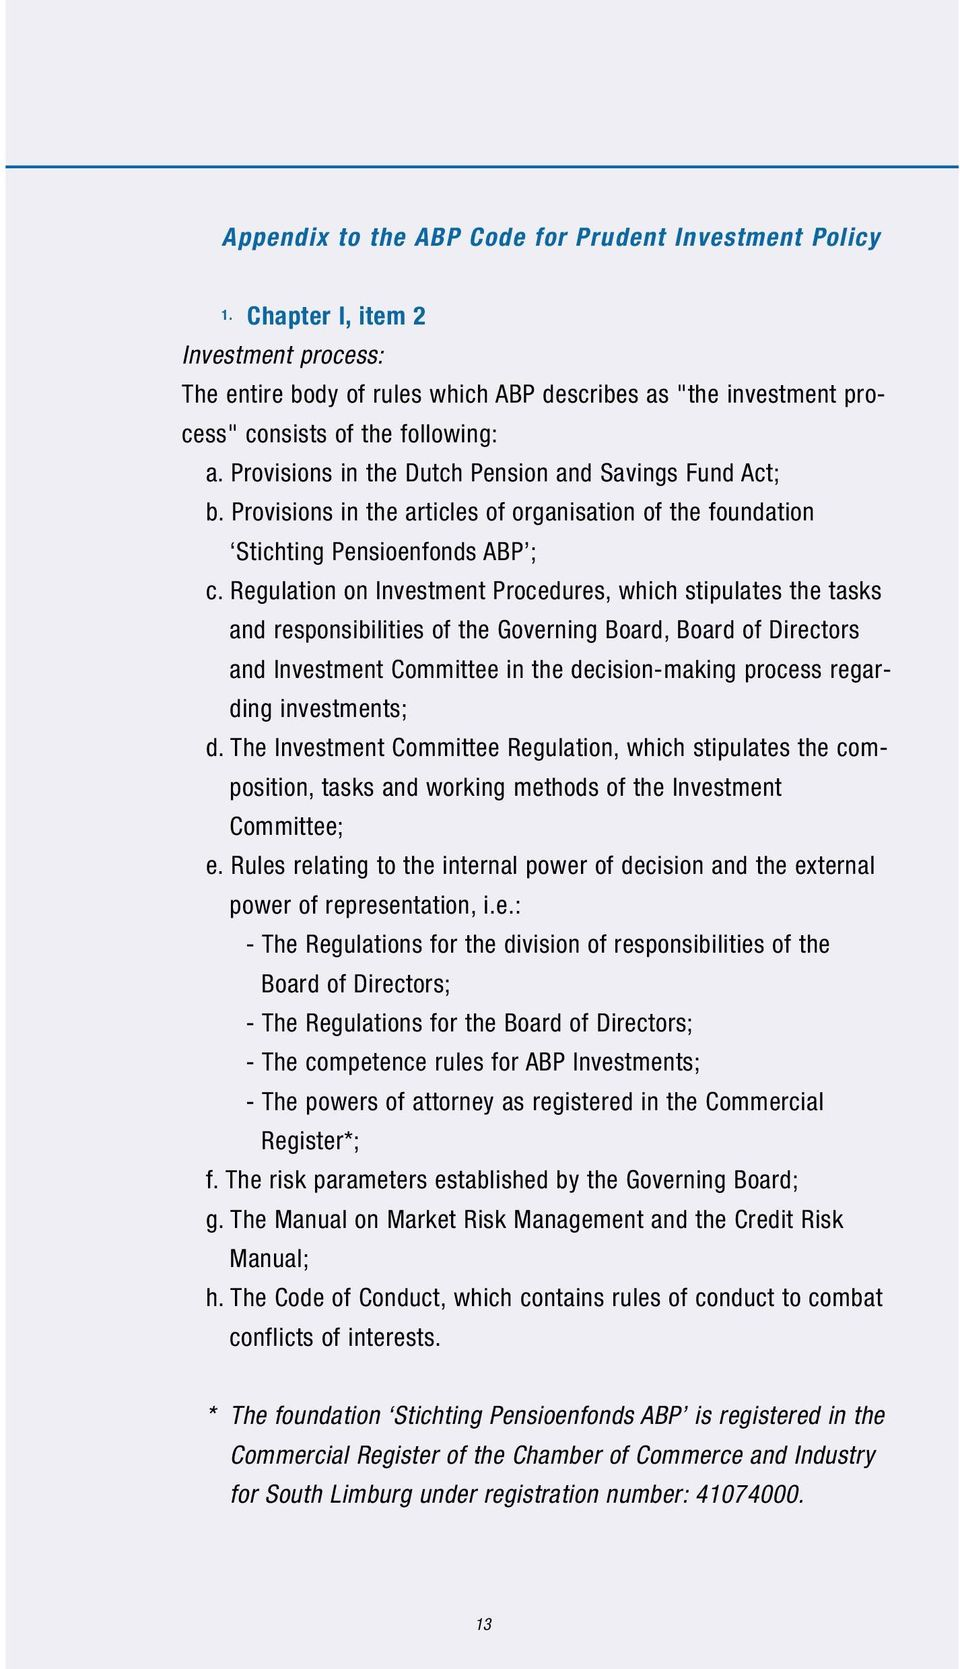 Regulation on Investment Procedures, which stipulates the tasks and responsibilities of the Governing Board, Board of Directors and Investment Committee in the decision-making process regarding